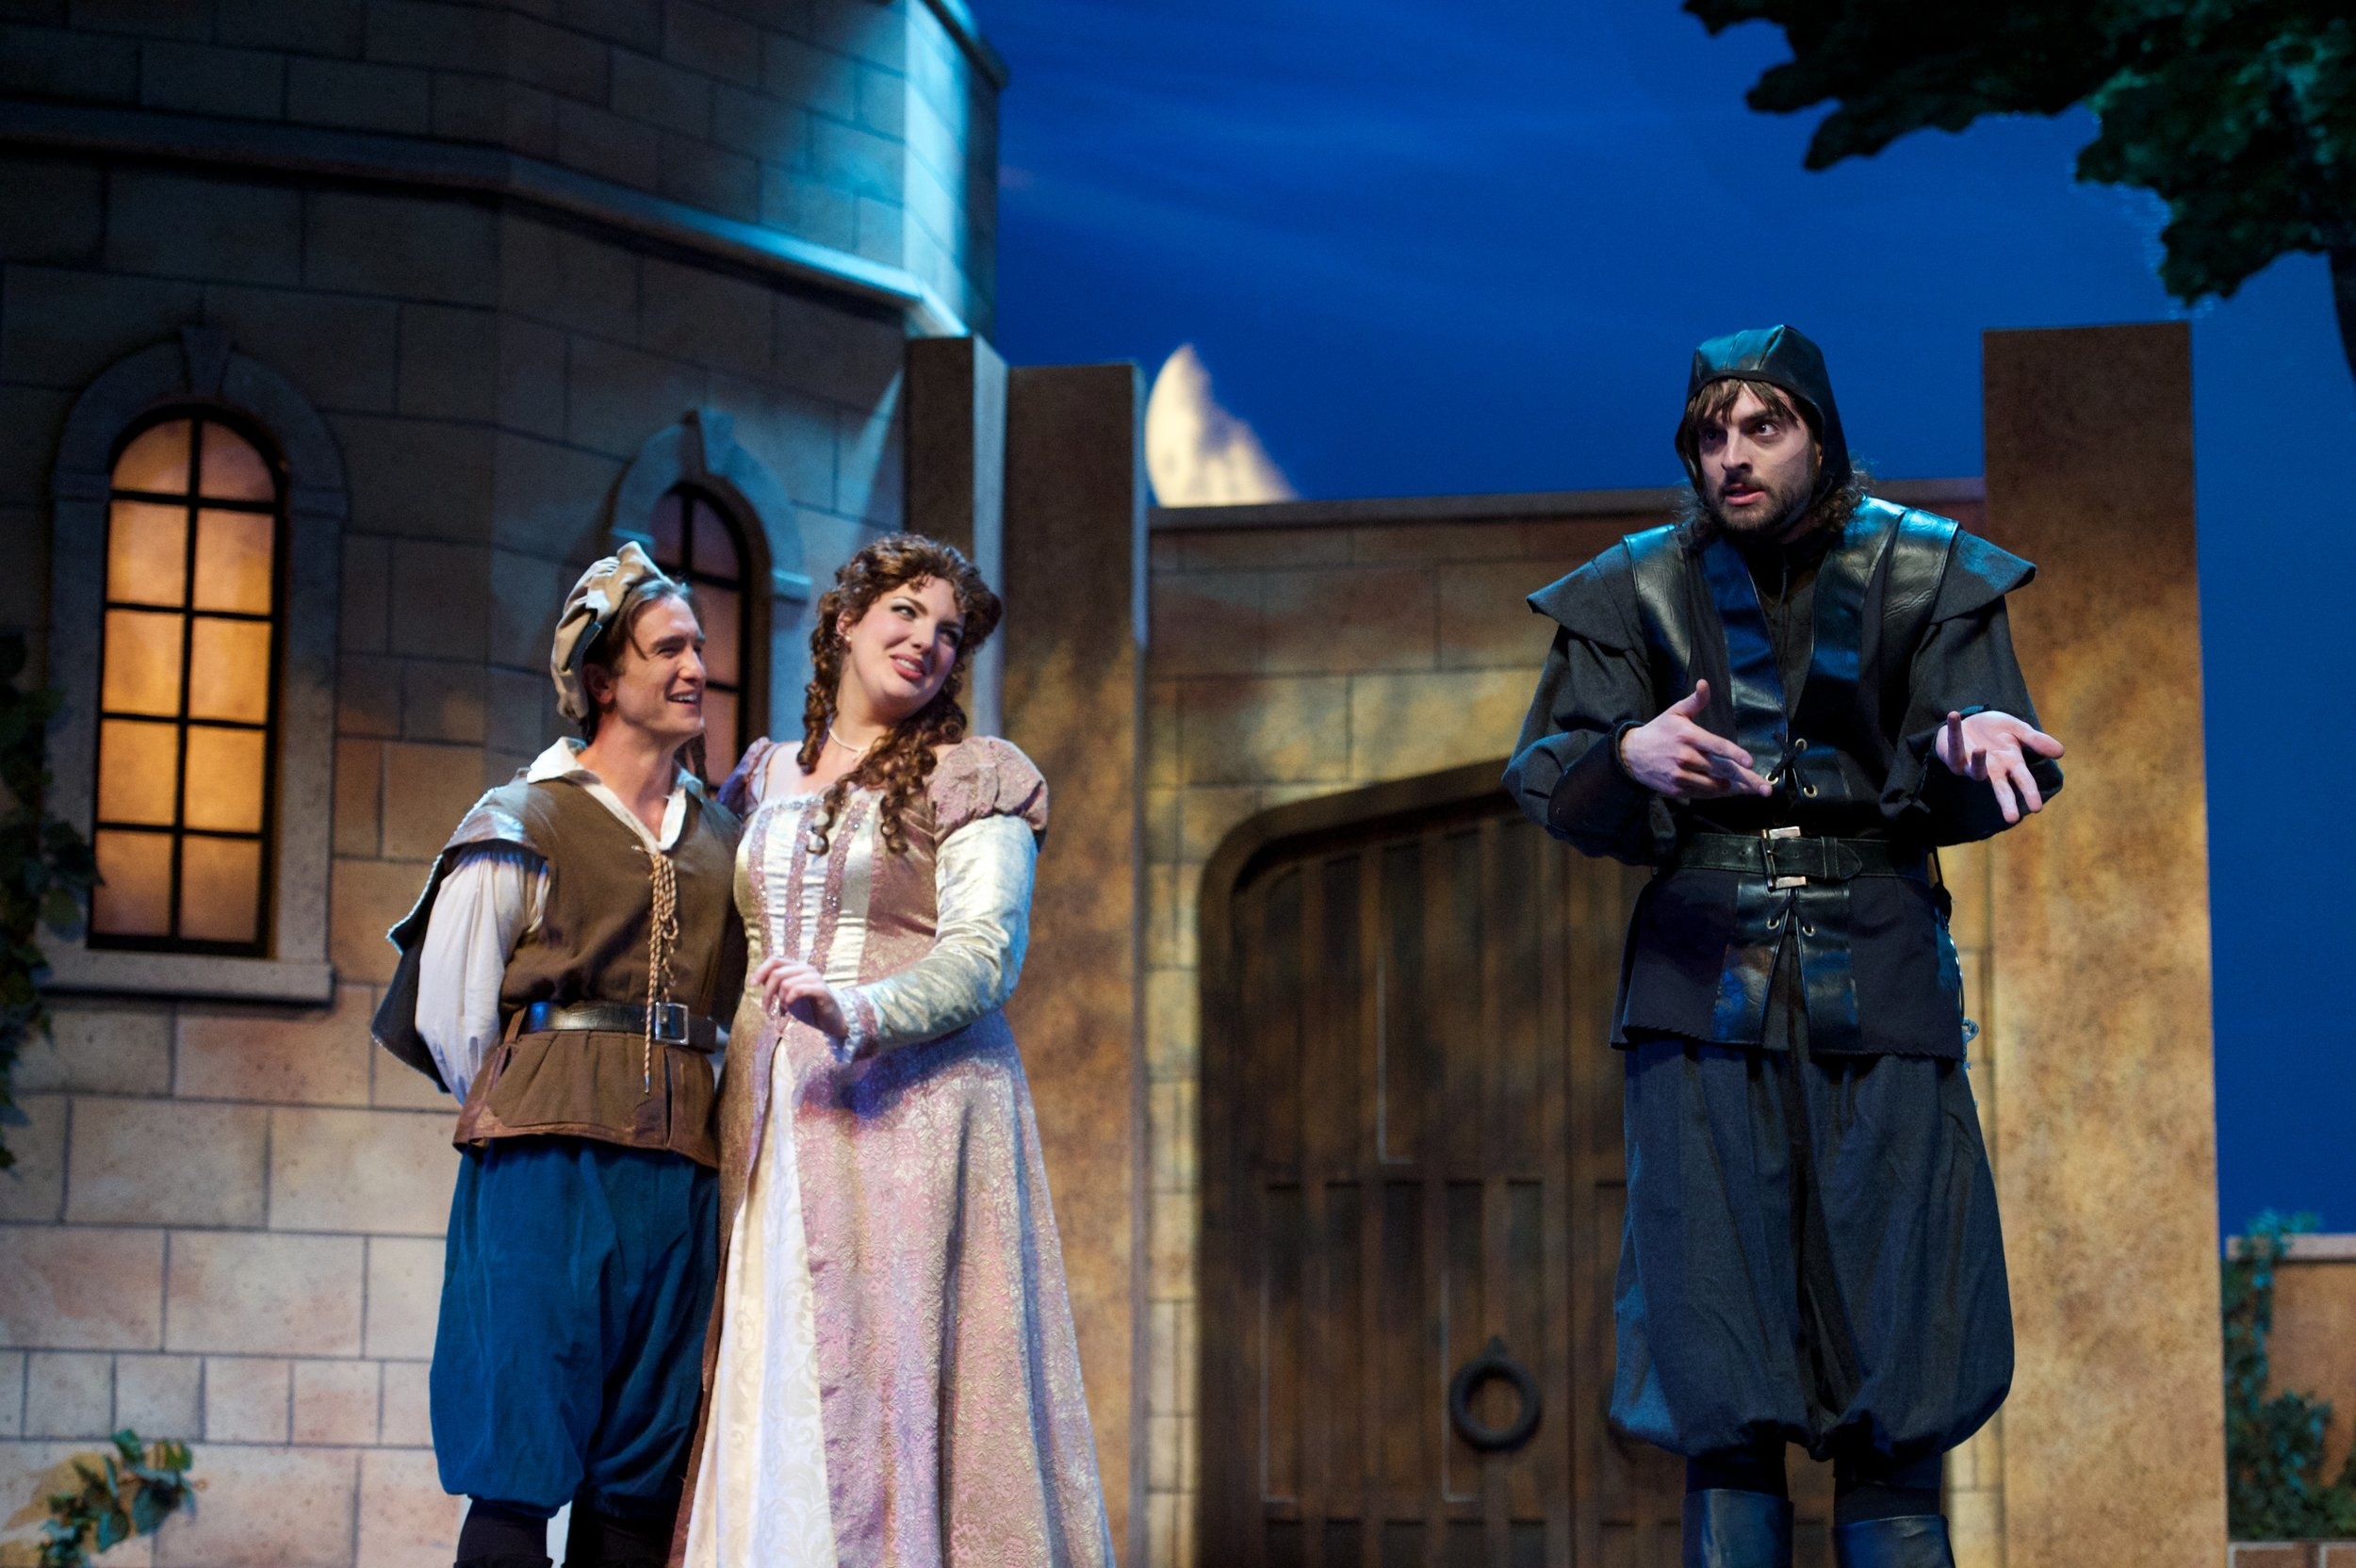 The Yeomen of the Guard, with Stephen Faulk and Oliva Woolley (photo by Matt Dilyard)